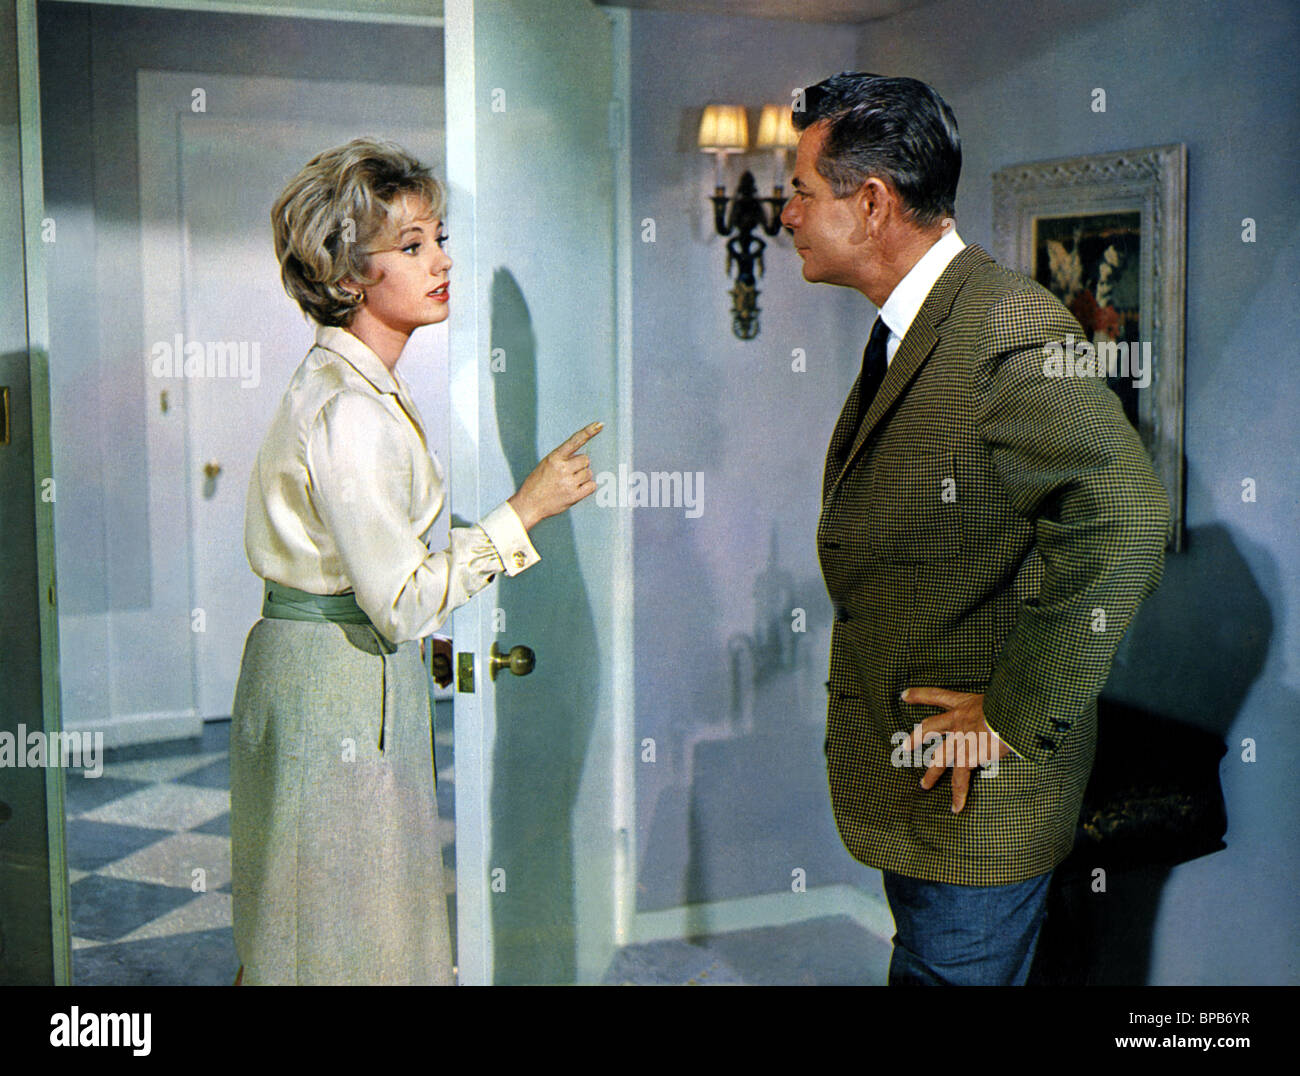 SHIRLEY JONES & GLENN FORD THE COURTSHIP OF EDDIE'S FATHER (1963) - Stock Image